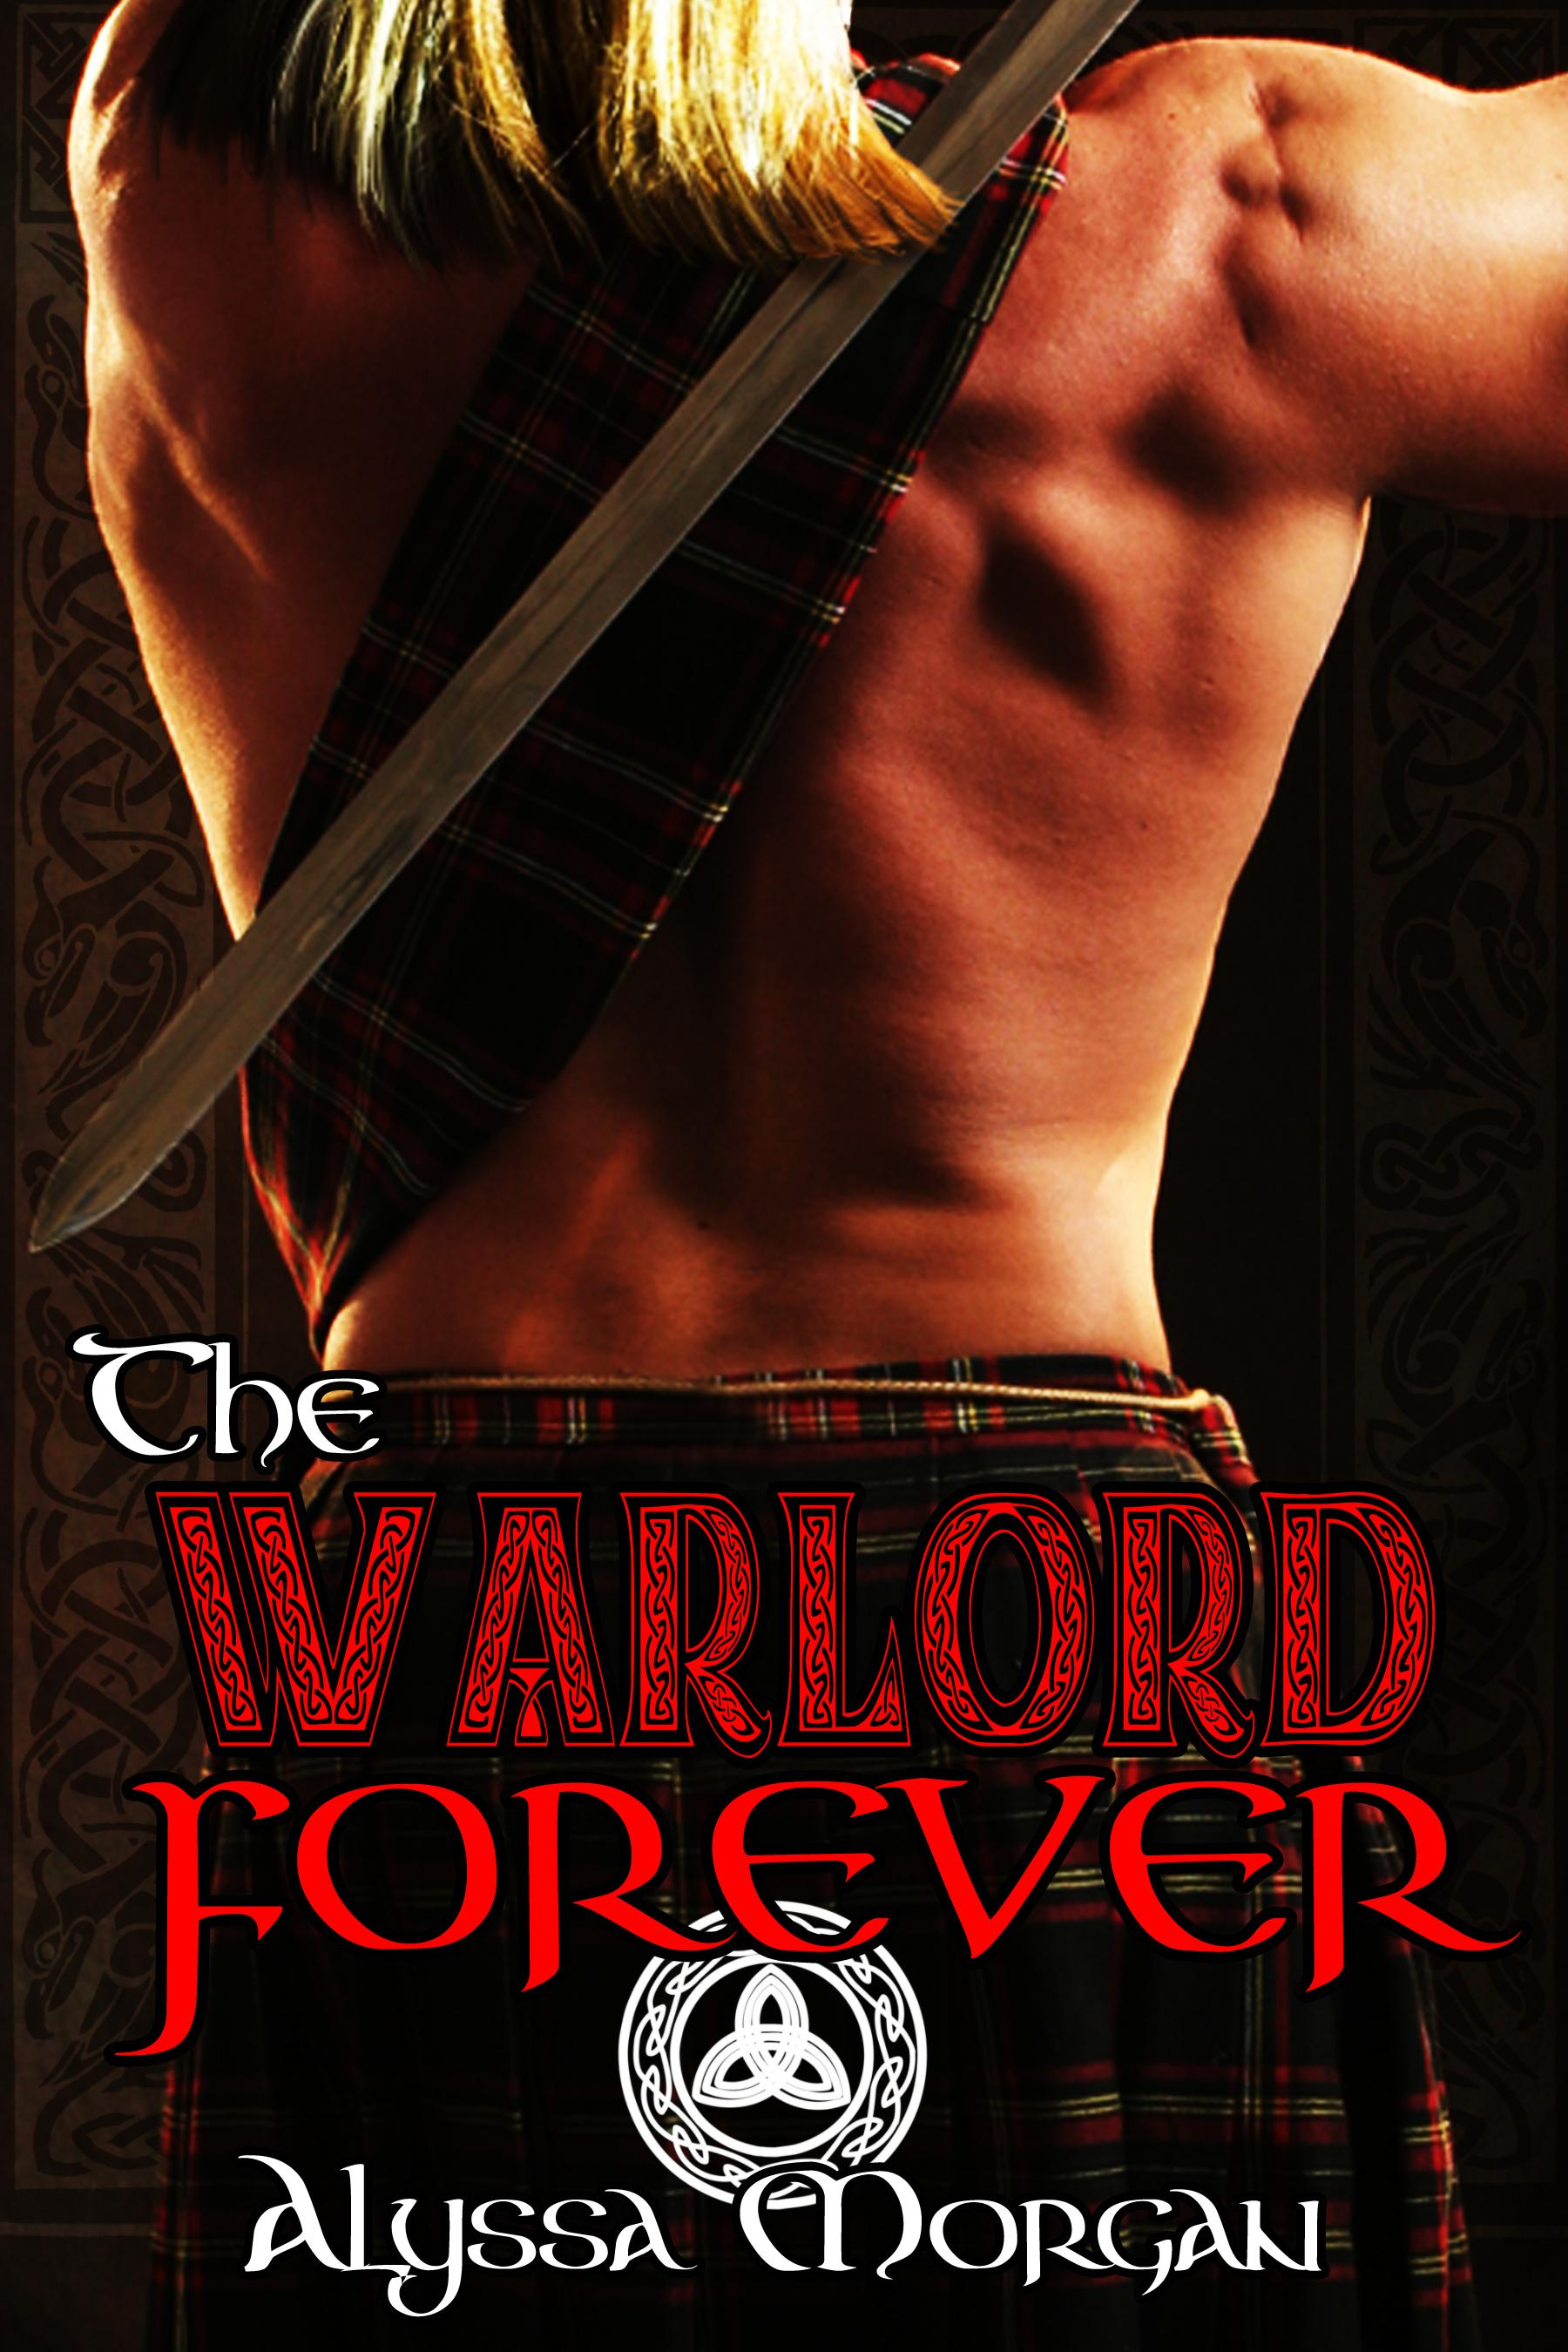 The Warlord Forever